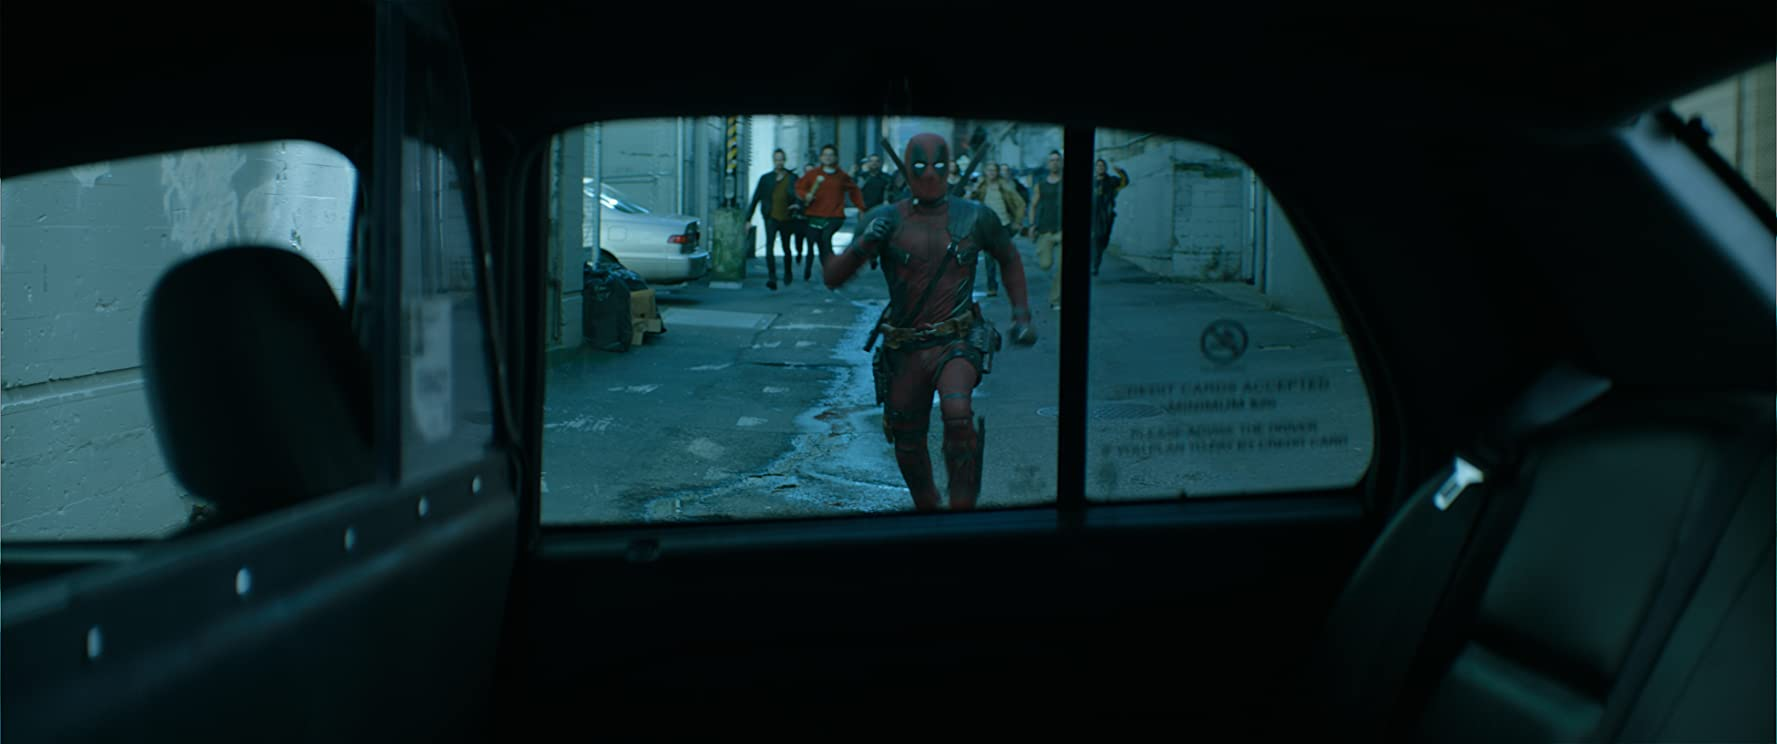 Ryan Reynolds in Deadpool 2 (2018)